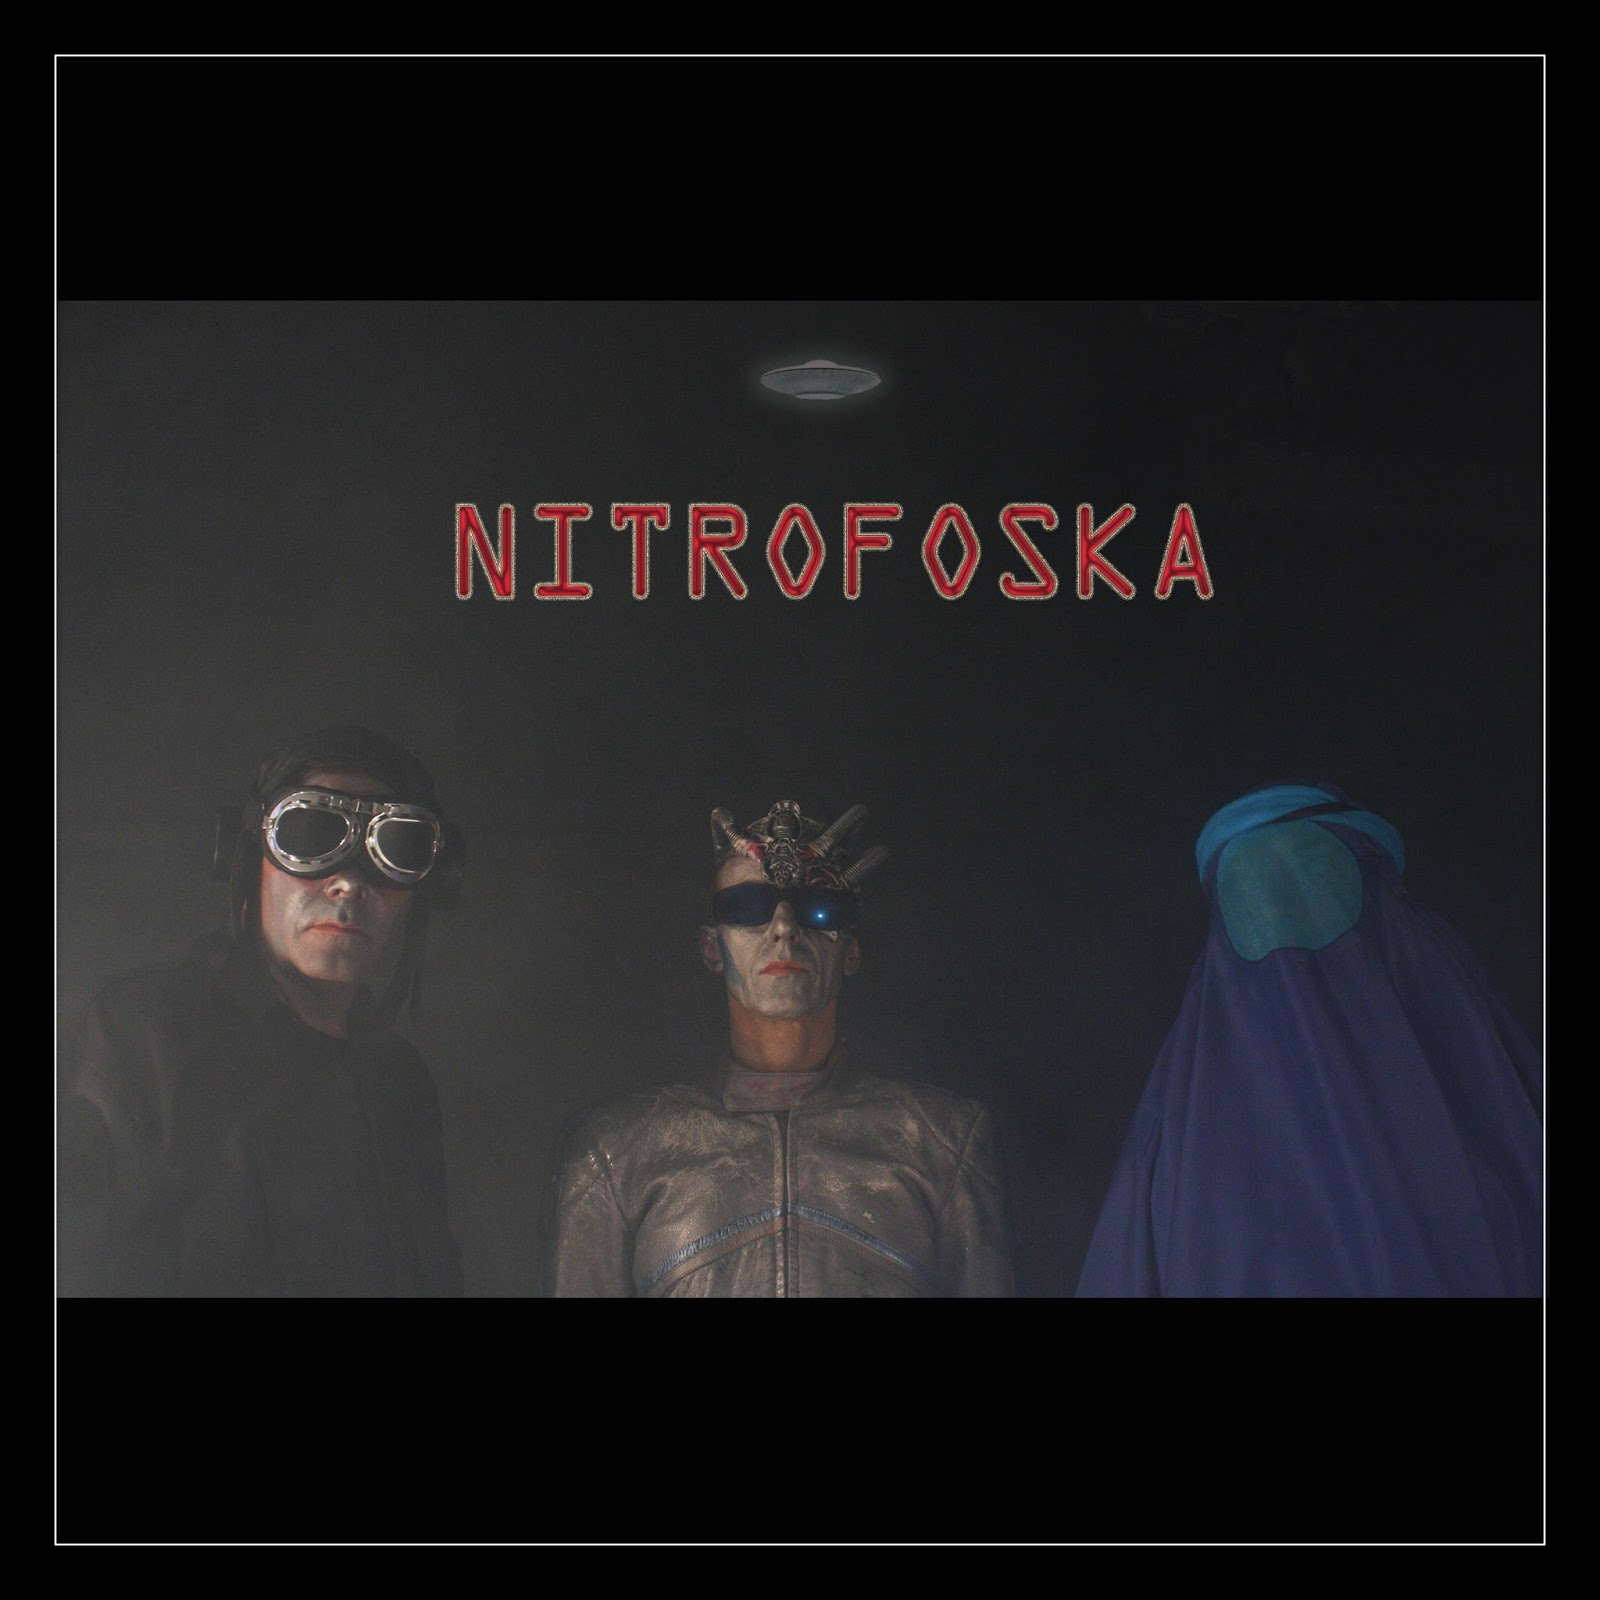 Descarga el CD Nitrofoska